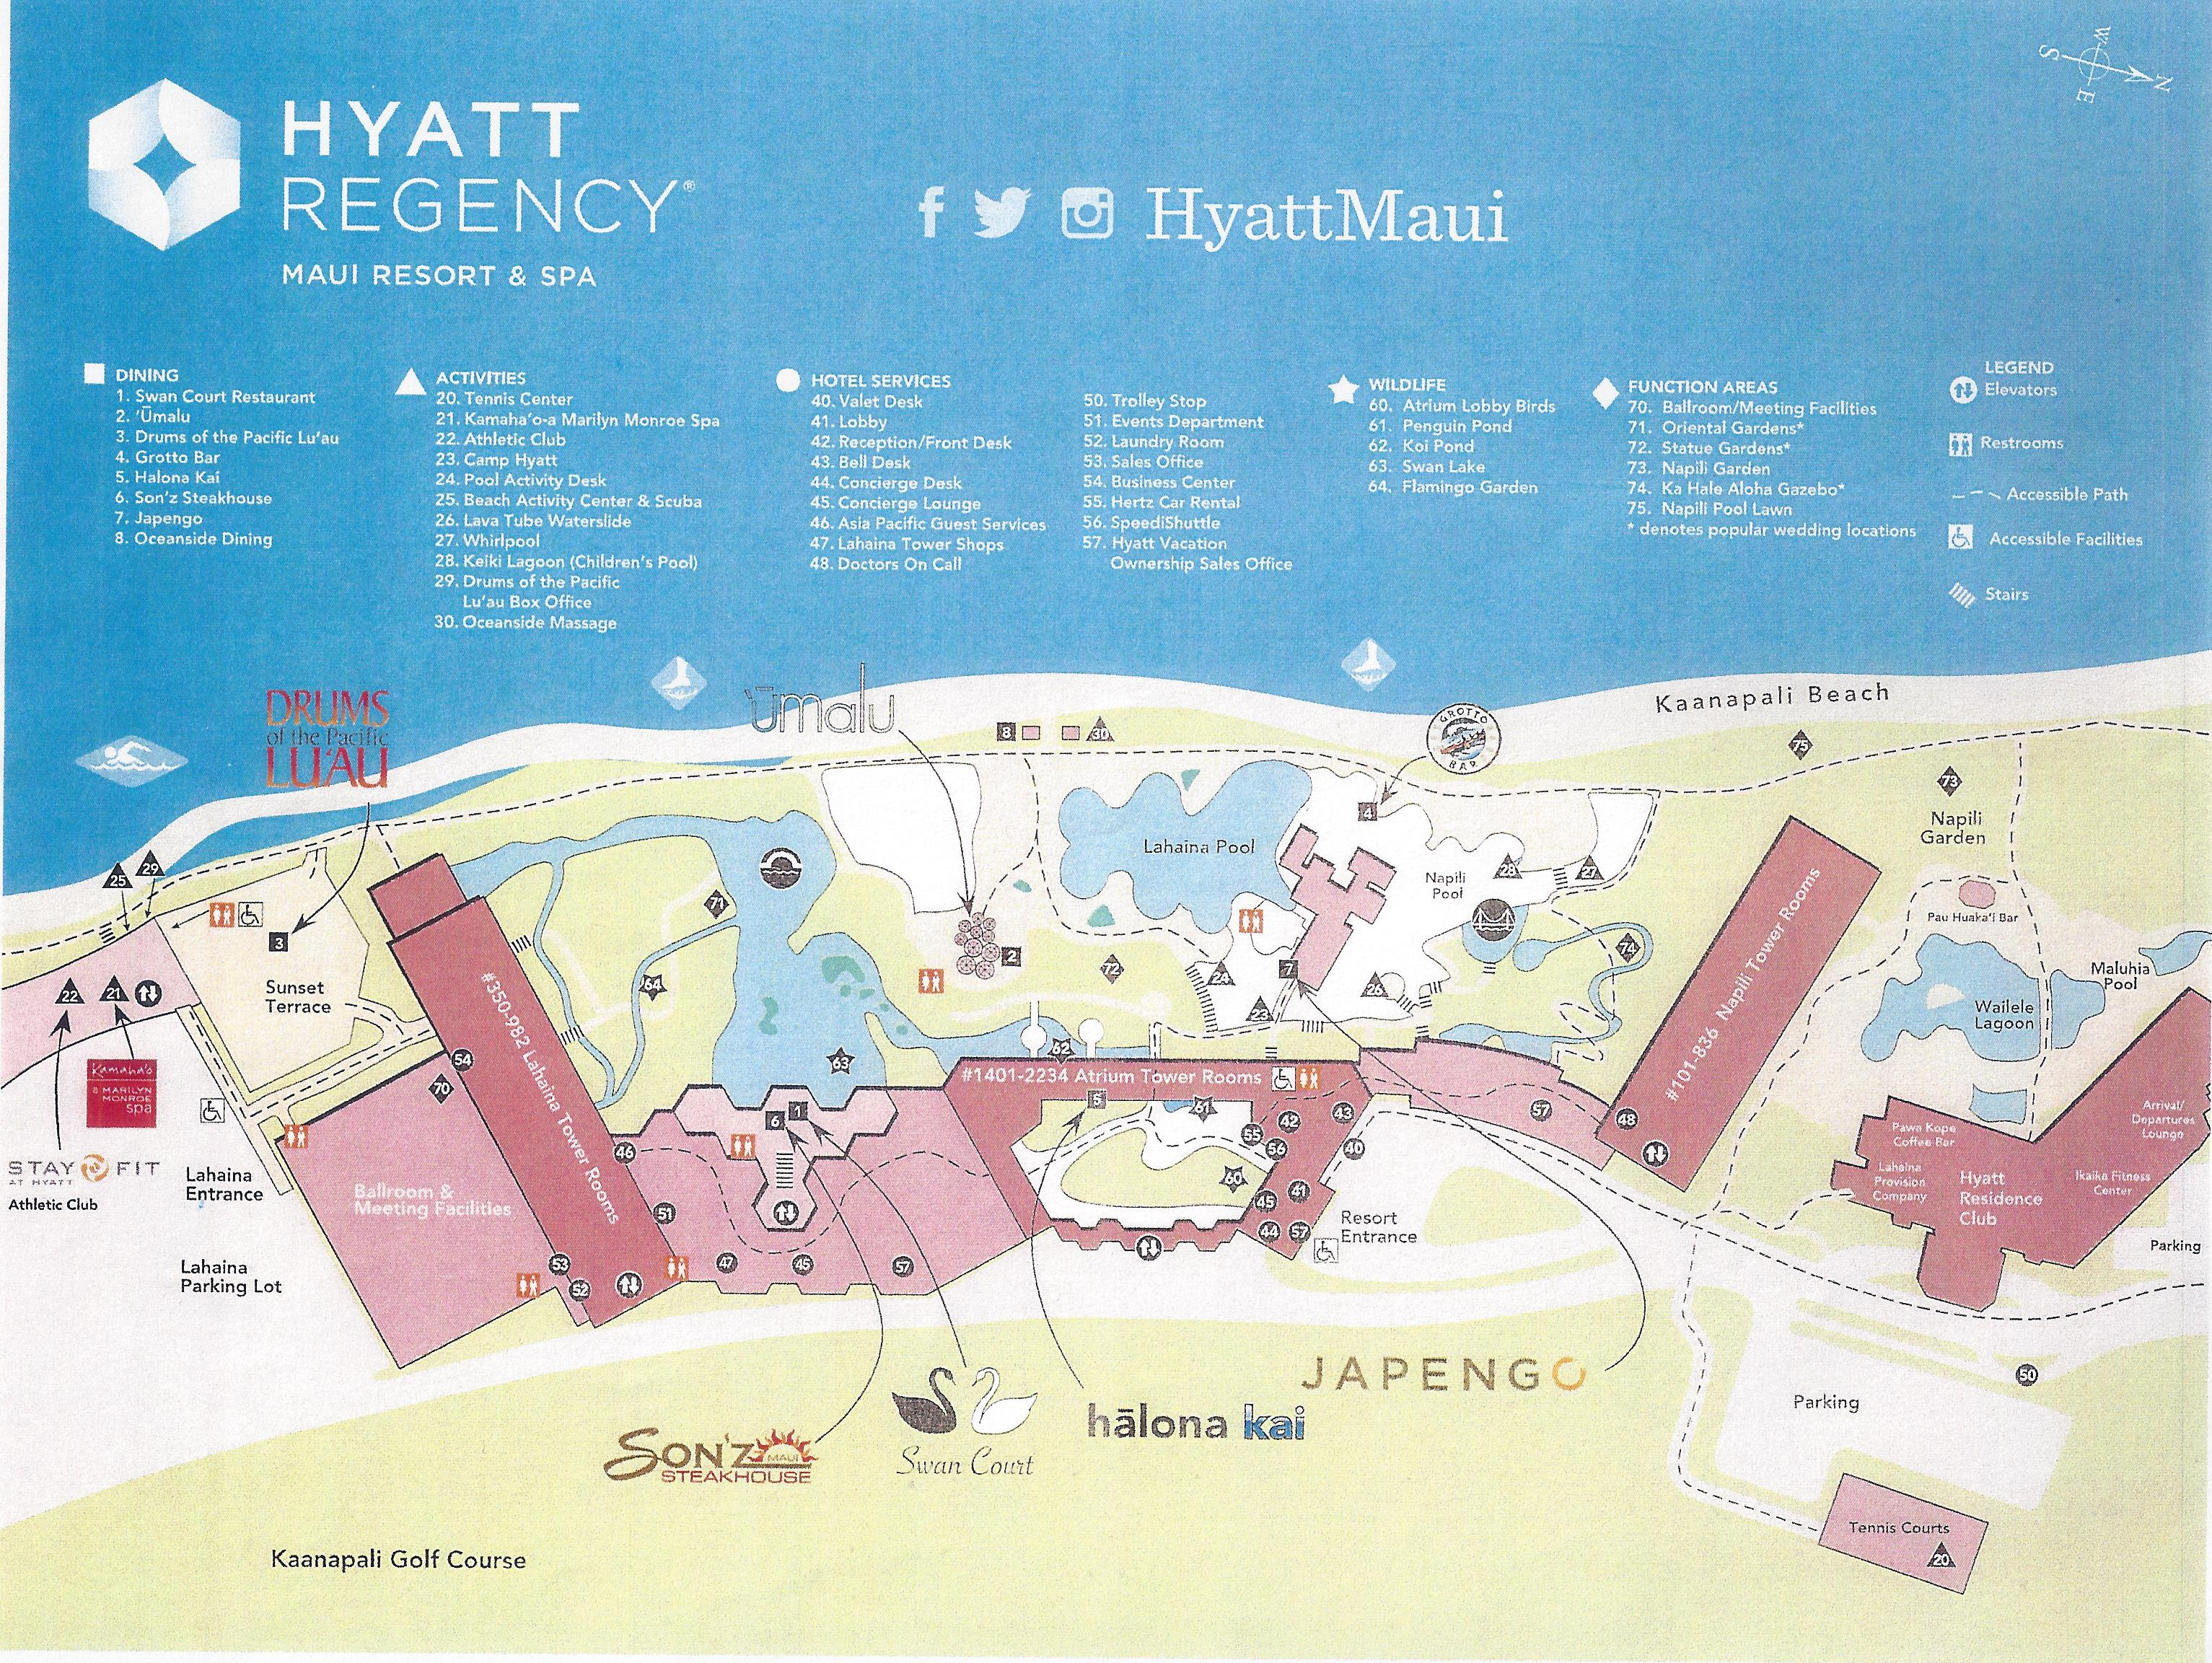 Hyatt Regency Maui Resort Spa Timeshare Users Group